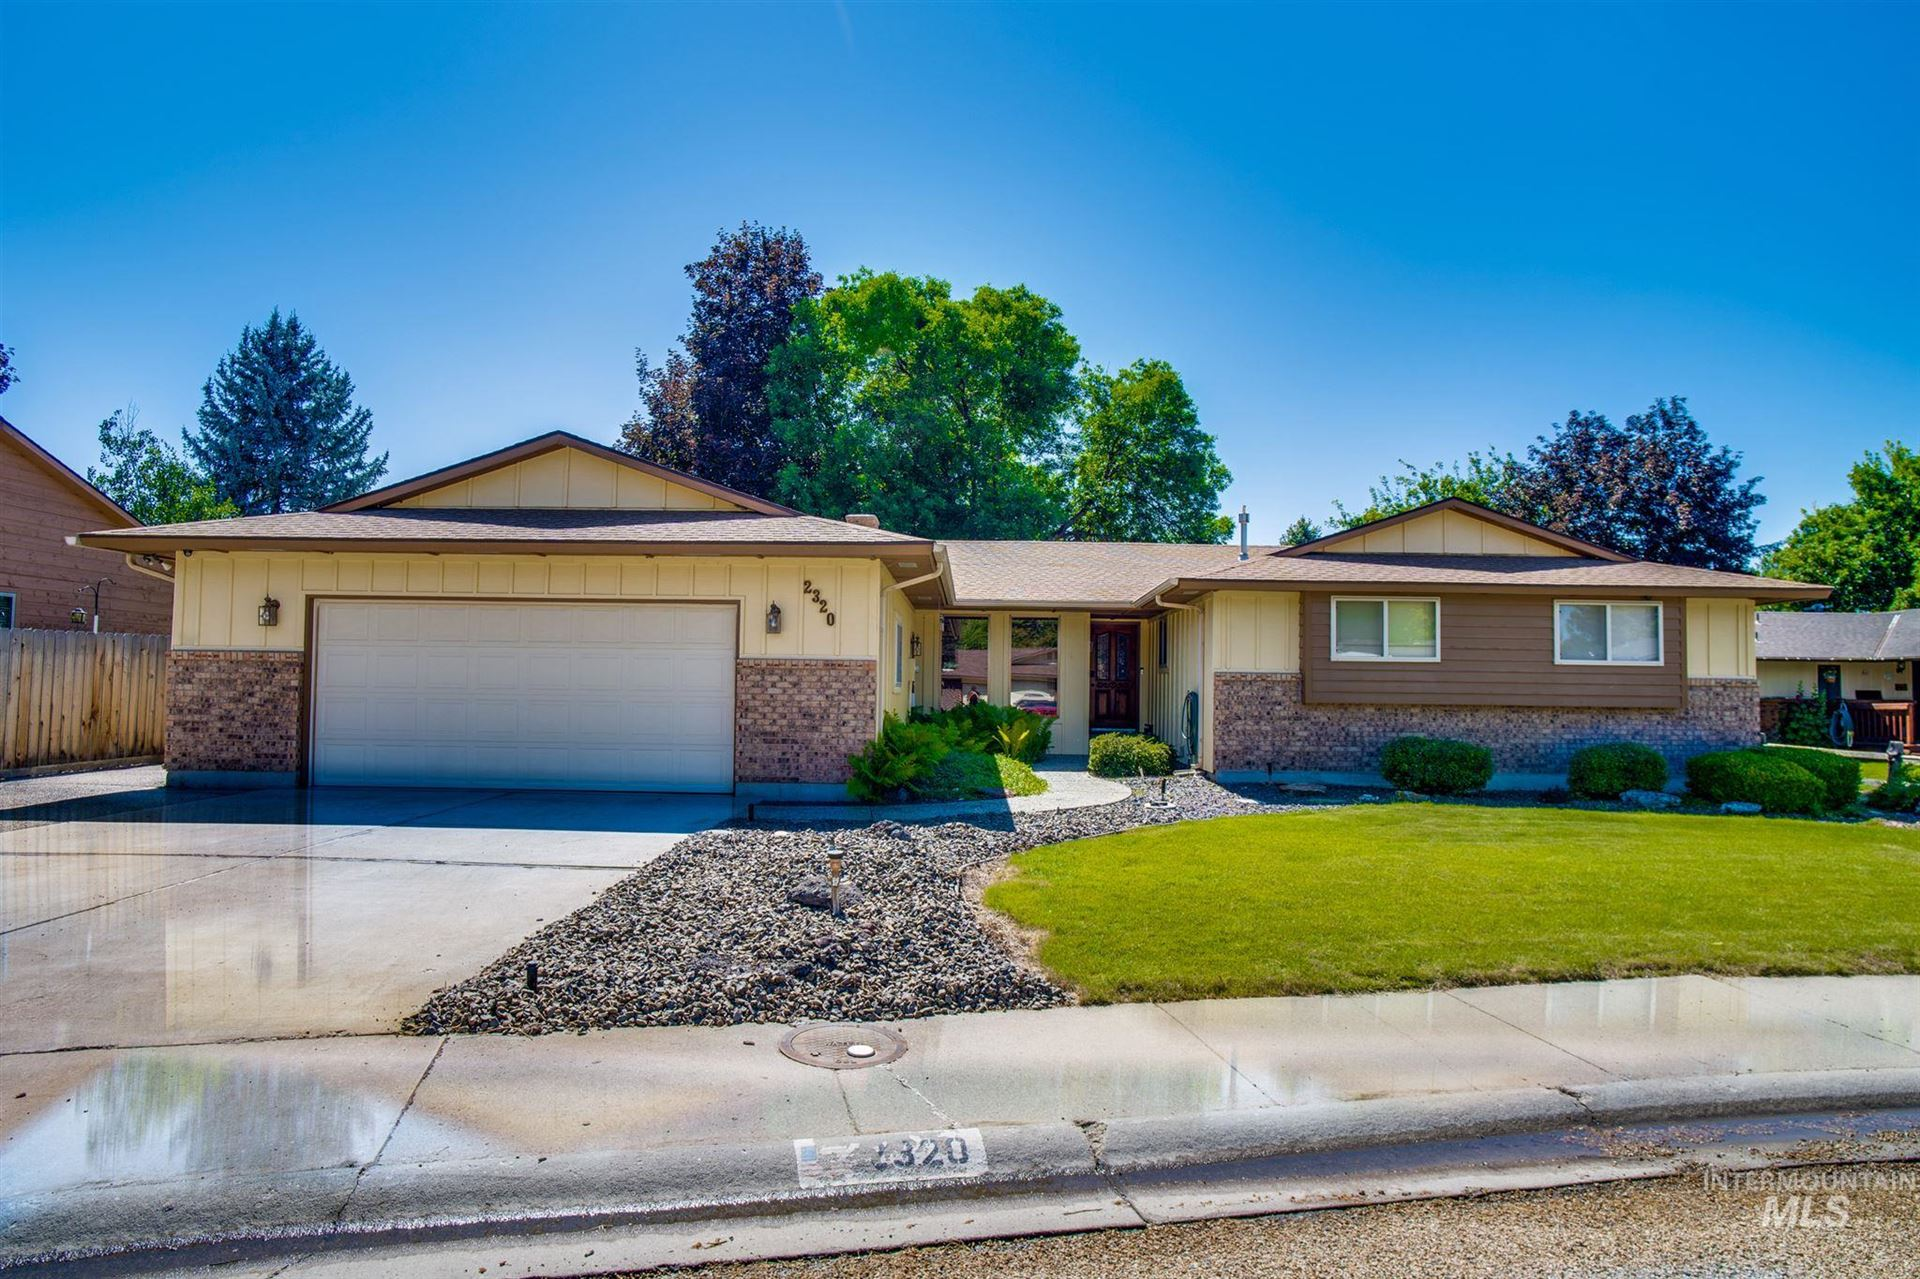 2320 Sunset Ave, Caldwell, ID 83605 - MLS#: 98771755